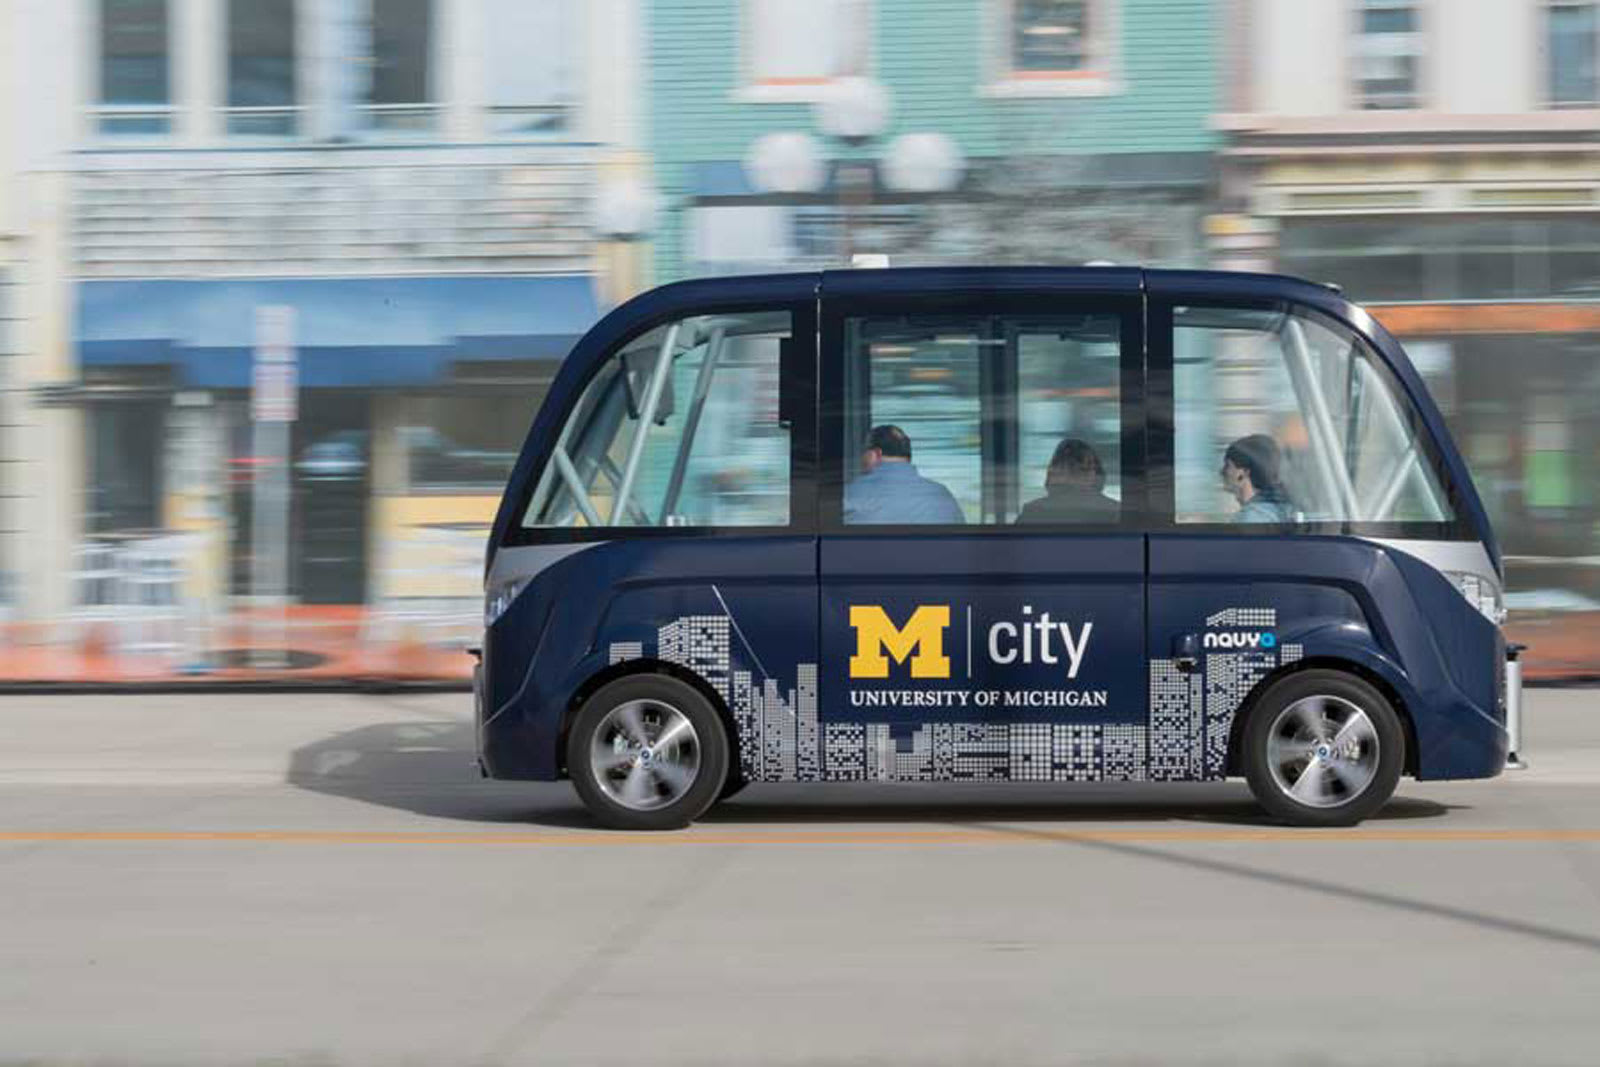 Self-driving shuttles are coming to the University of Michigan